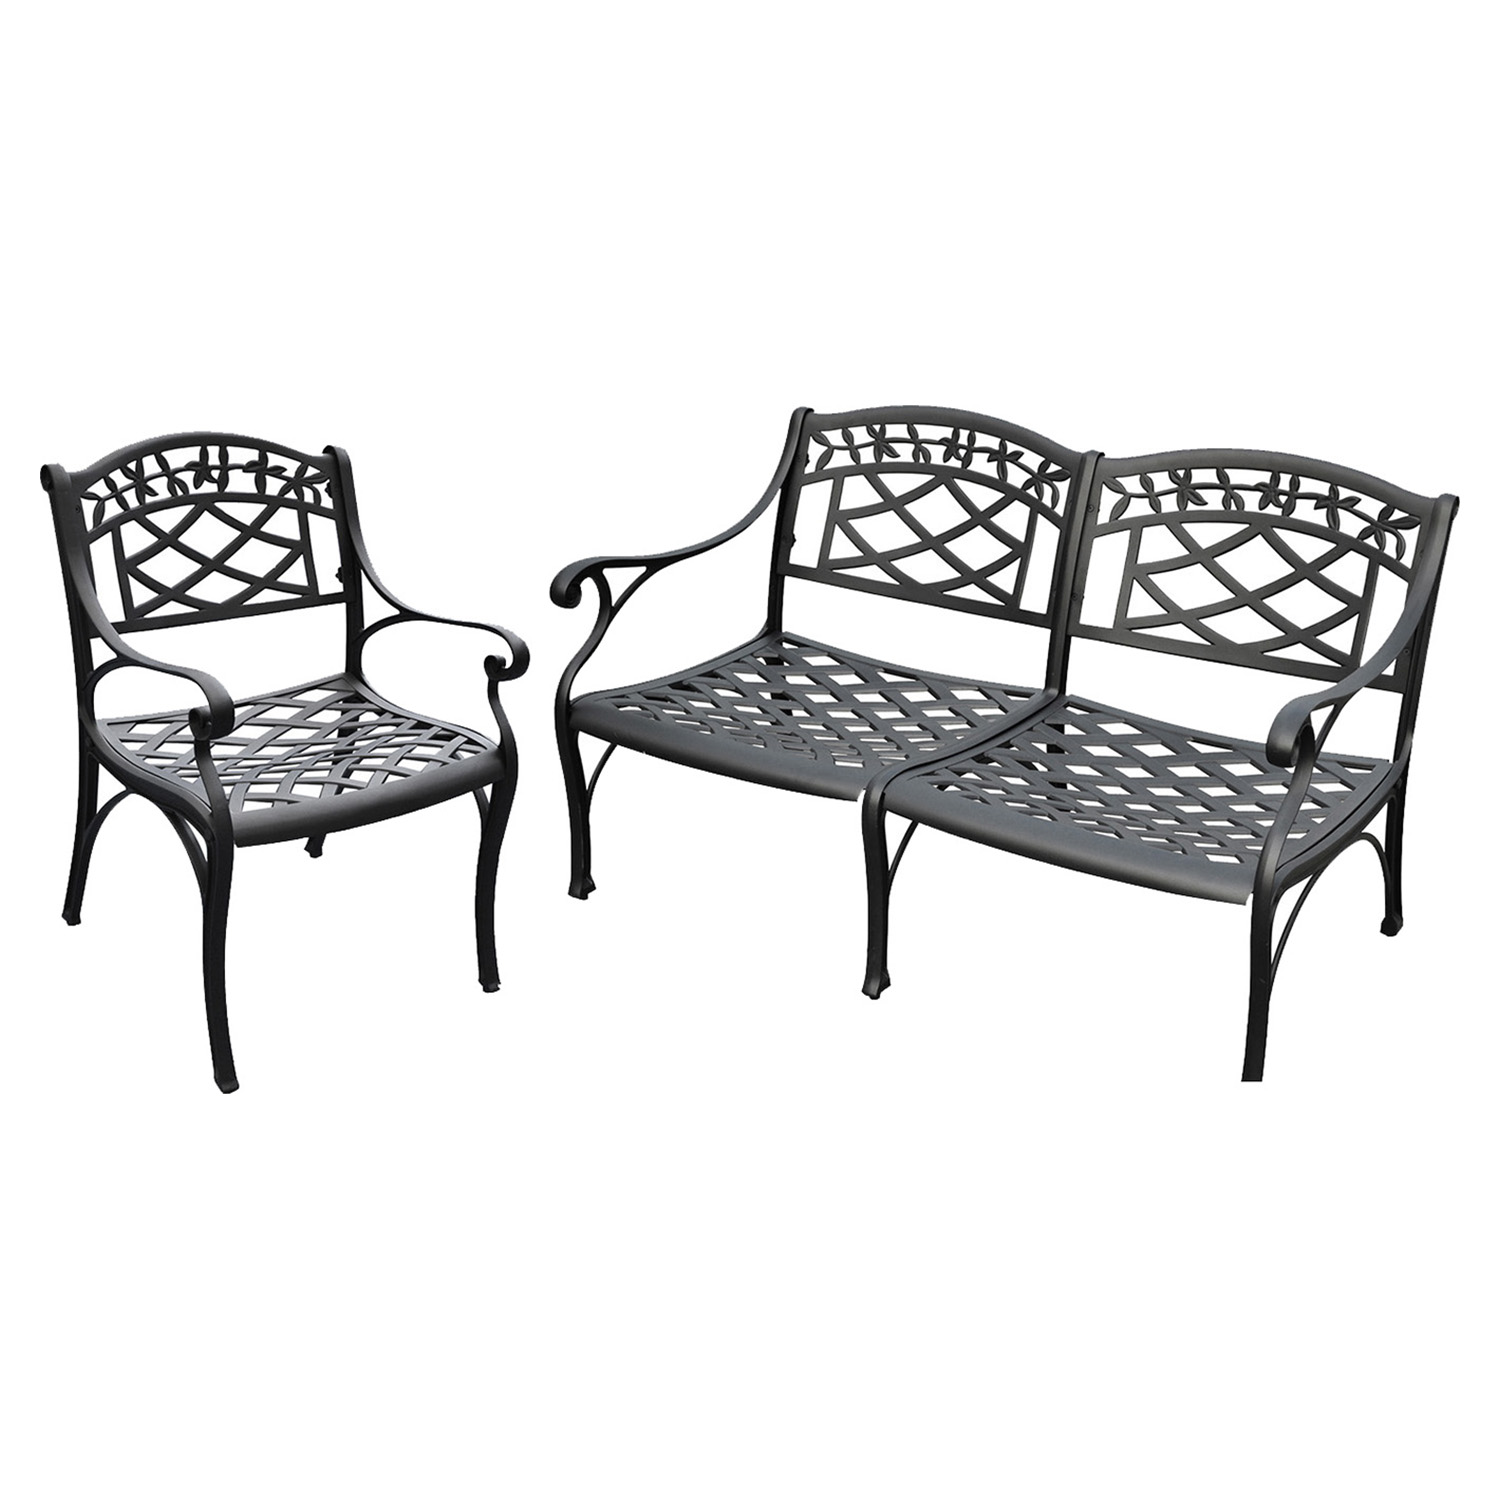 Sedona Conversation Loveseat and Club Chair - Cast Aluminum, Black - CROS-KO60004BK